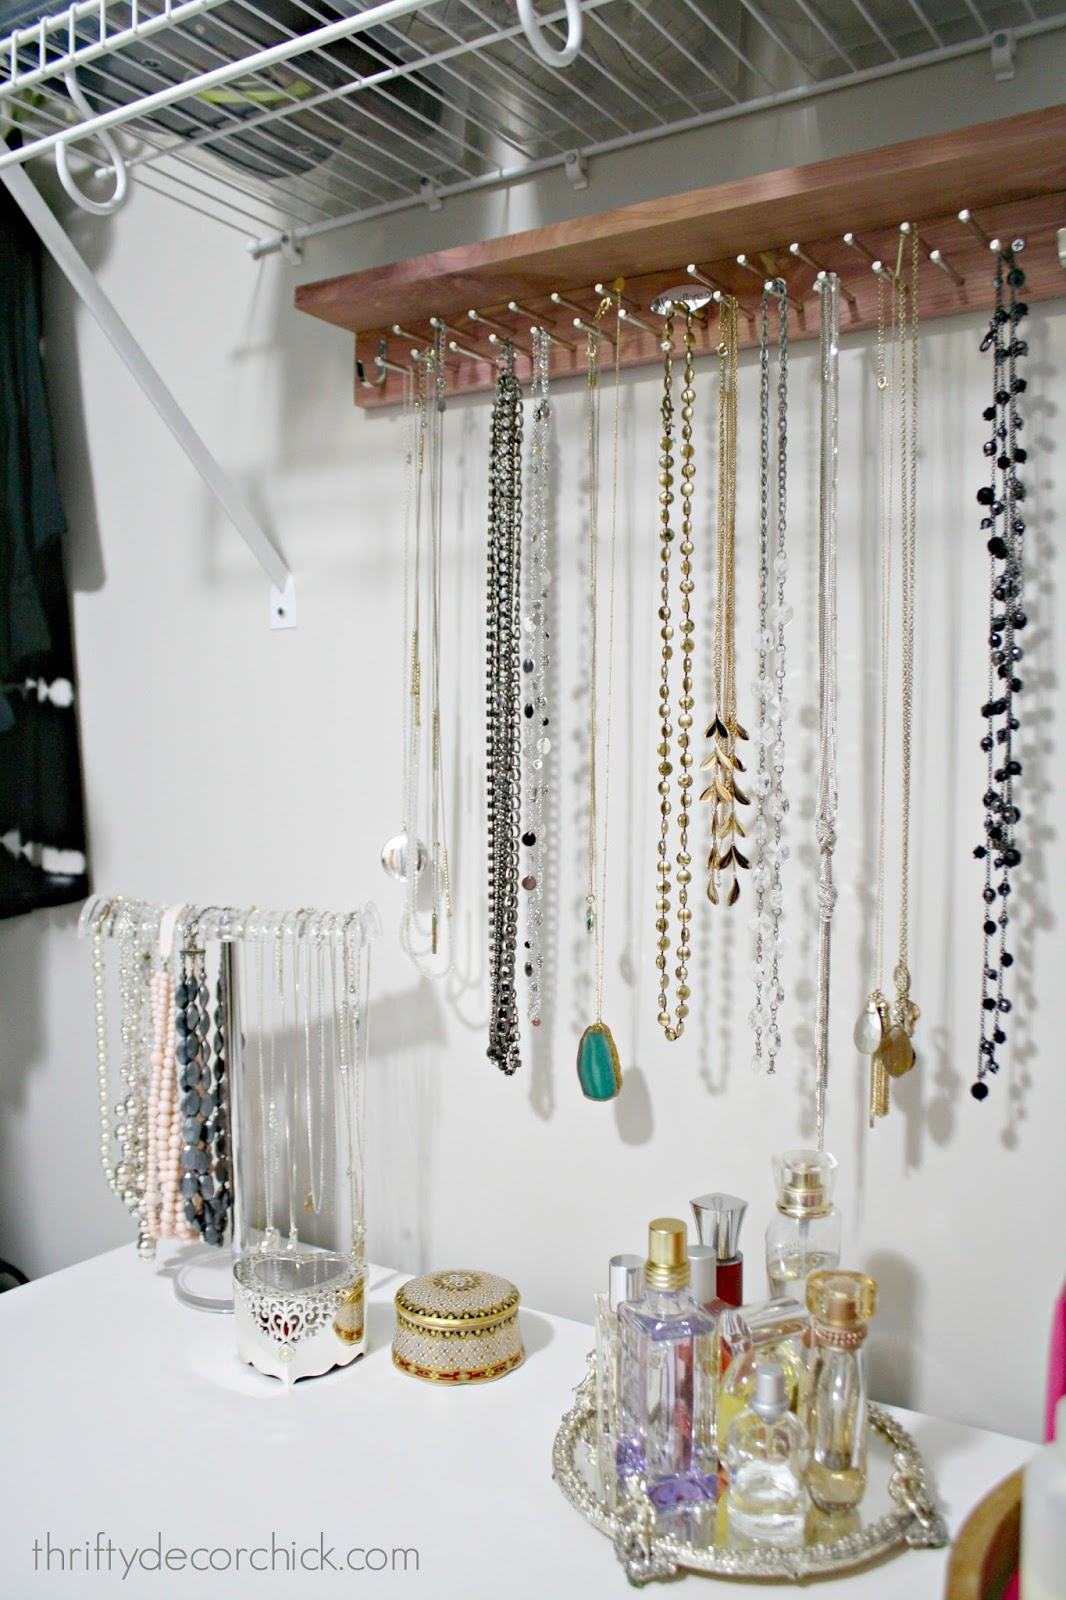 Jewelry and perfume display closet